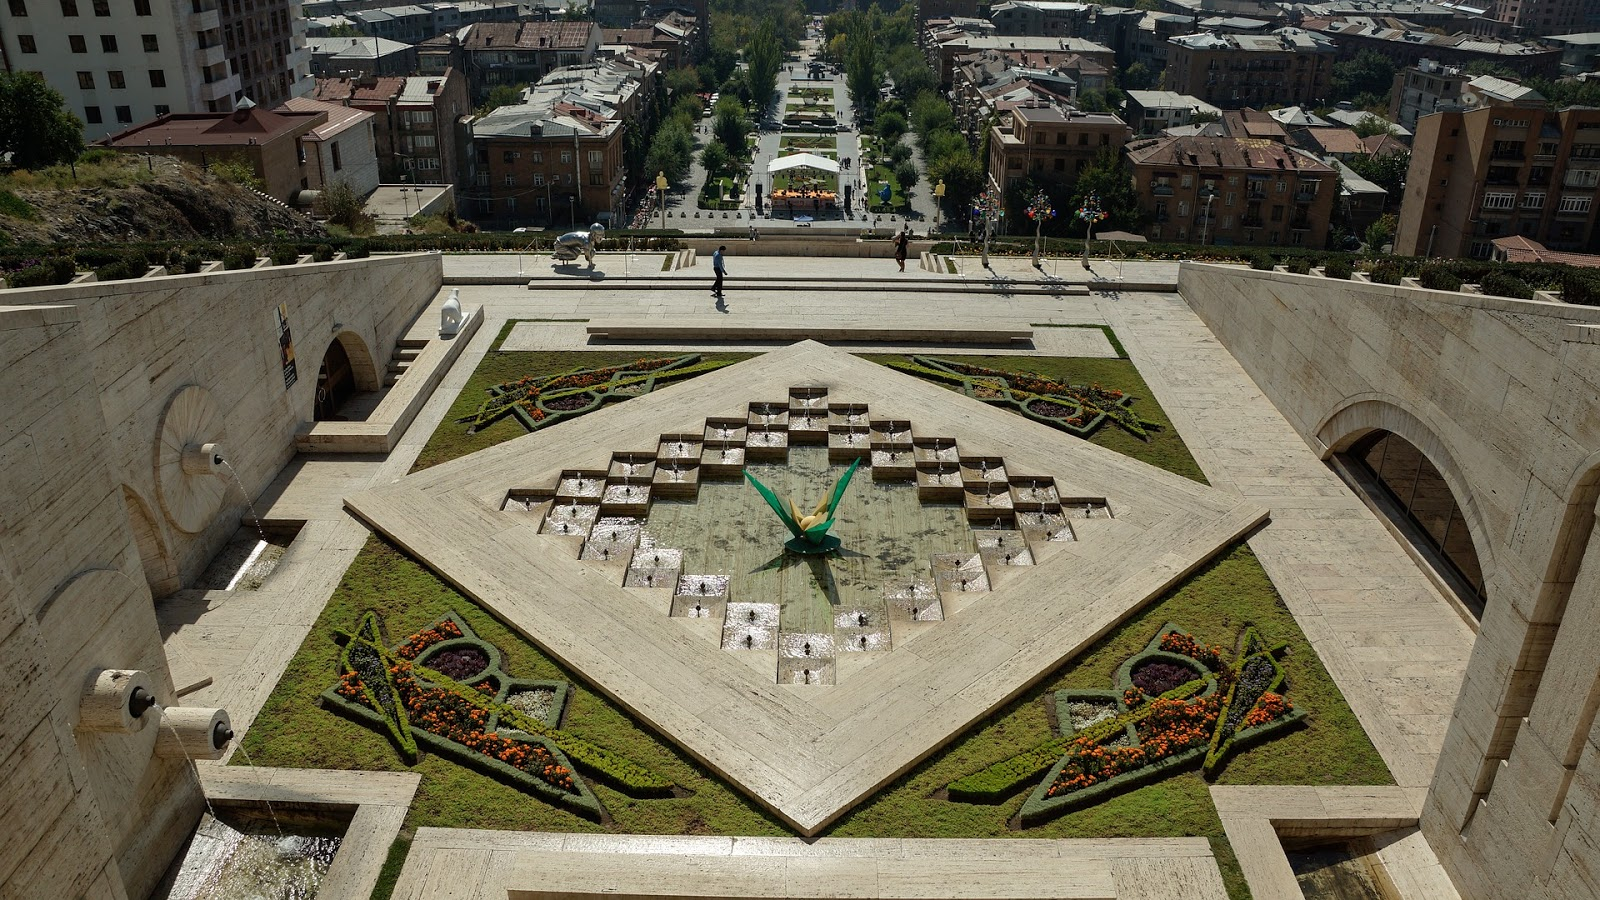 yerevan, armenia -10 Cheapest Places in the World You Must Know in 2017 - www.howsheknowsthat.com - travel, travel tips, travel on budget, cheapest places